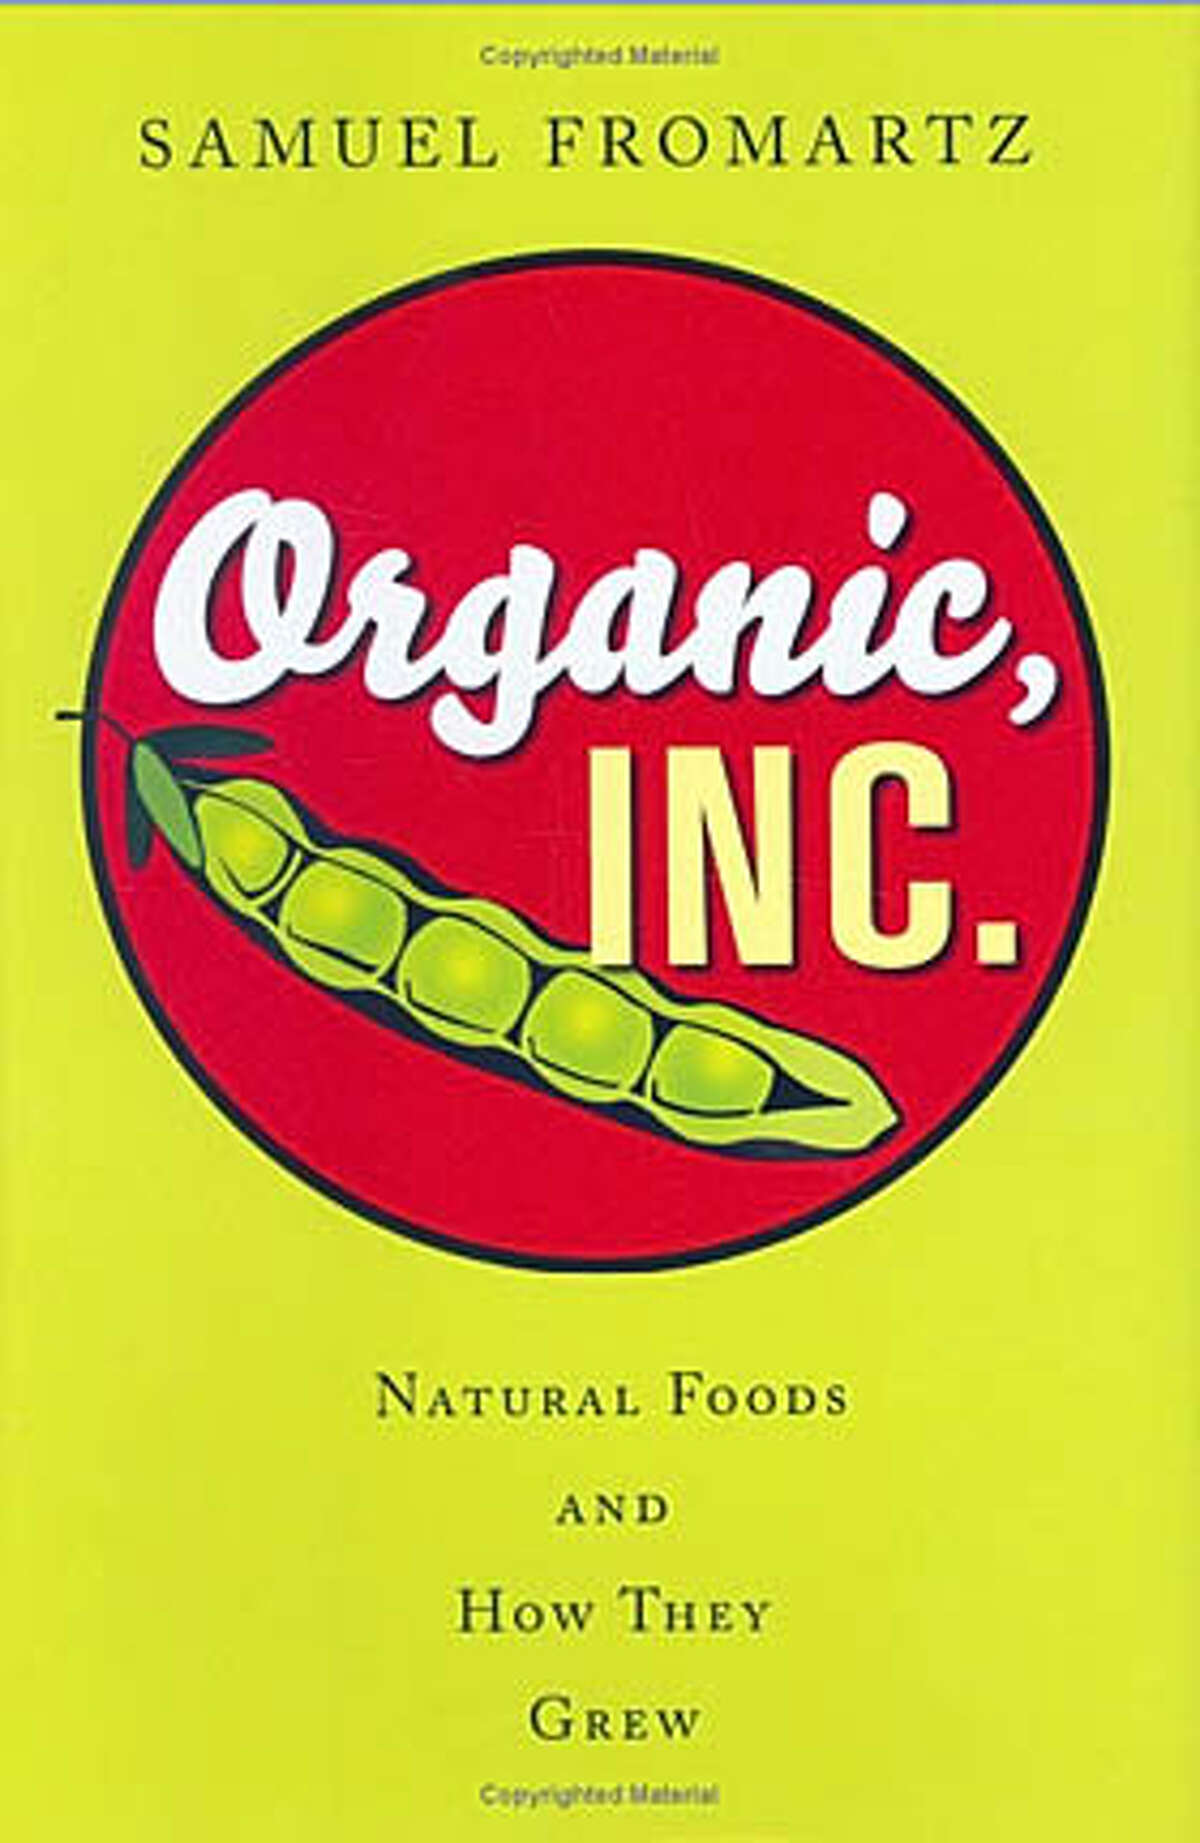 """""""Organic, Inc. Natural Foods and How They Grew"""" by Samuel Fromartz"""